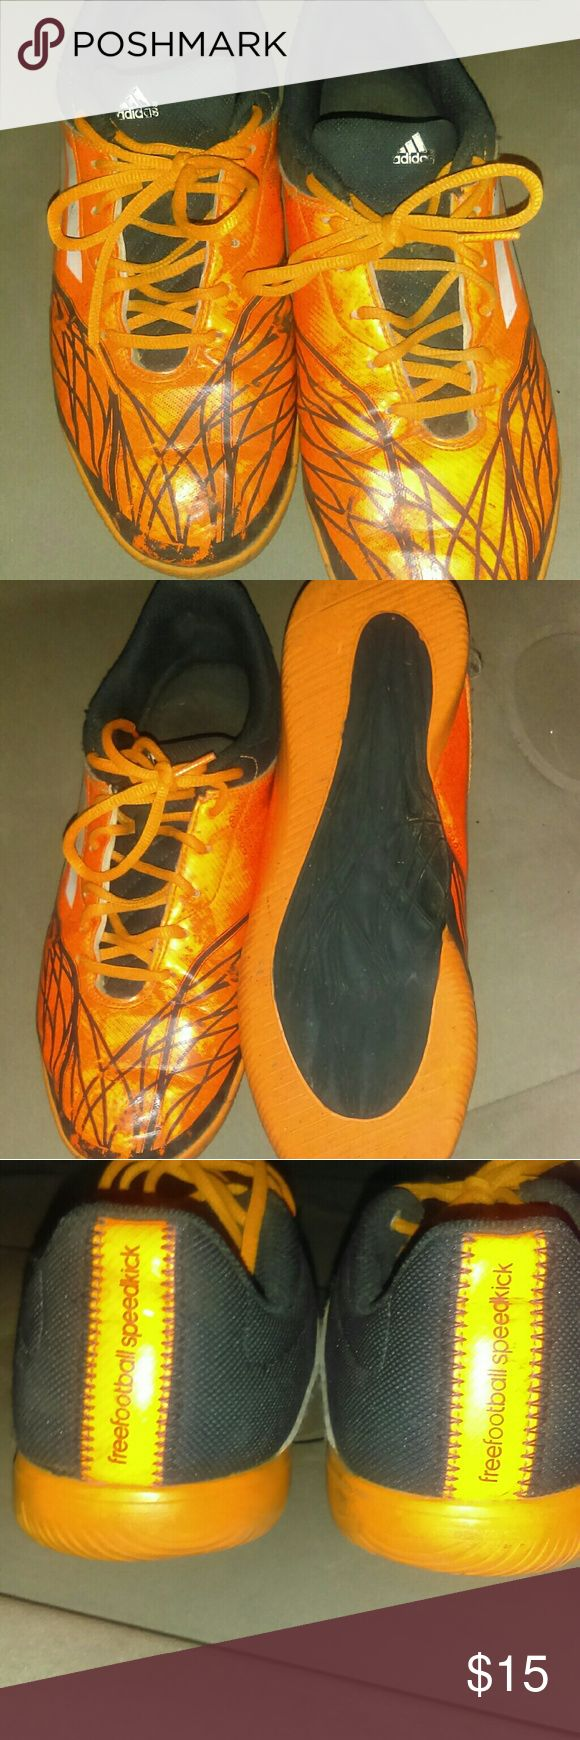 Adidas indoor soccer shoes Stylish and comfortable indoor soccer shoes! Mint condition hardly used no major tear at all! Don't use them anymore so they can be useful for another gol scorer!!! adidas Shoes Athletic Shoes